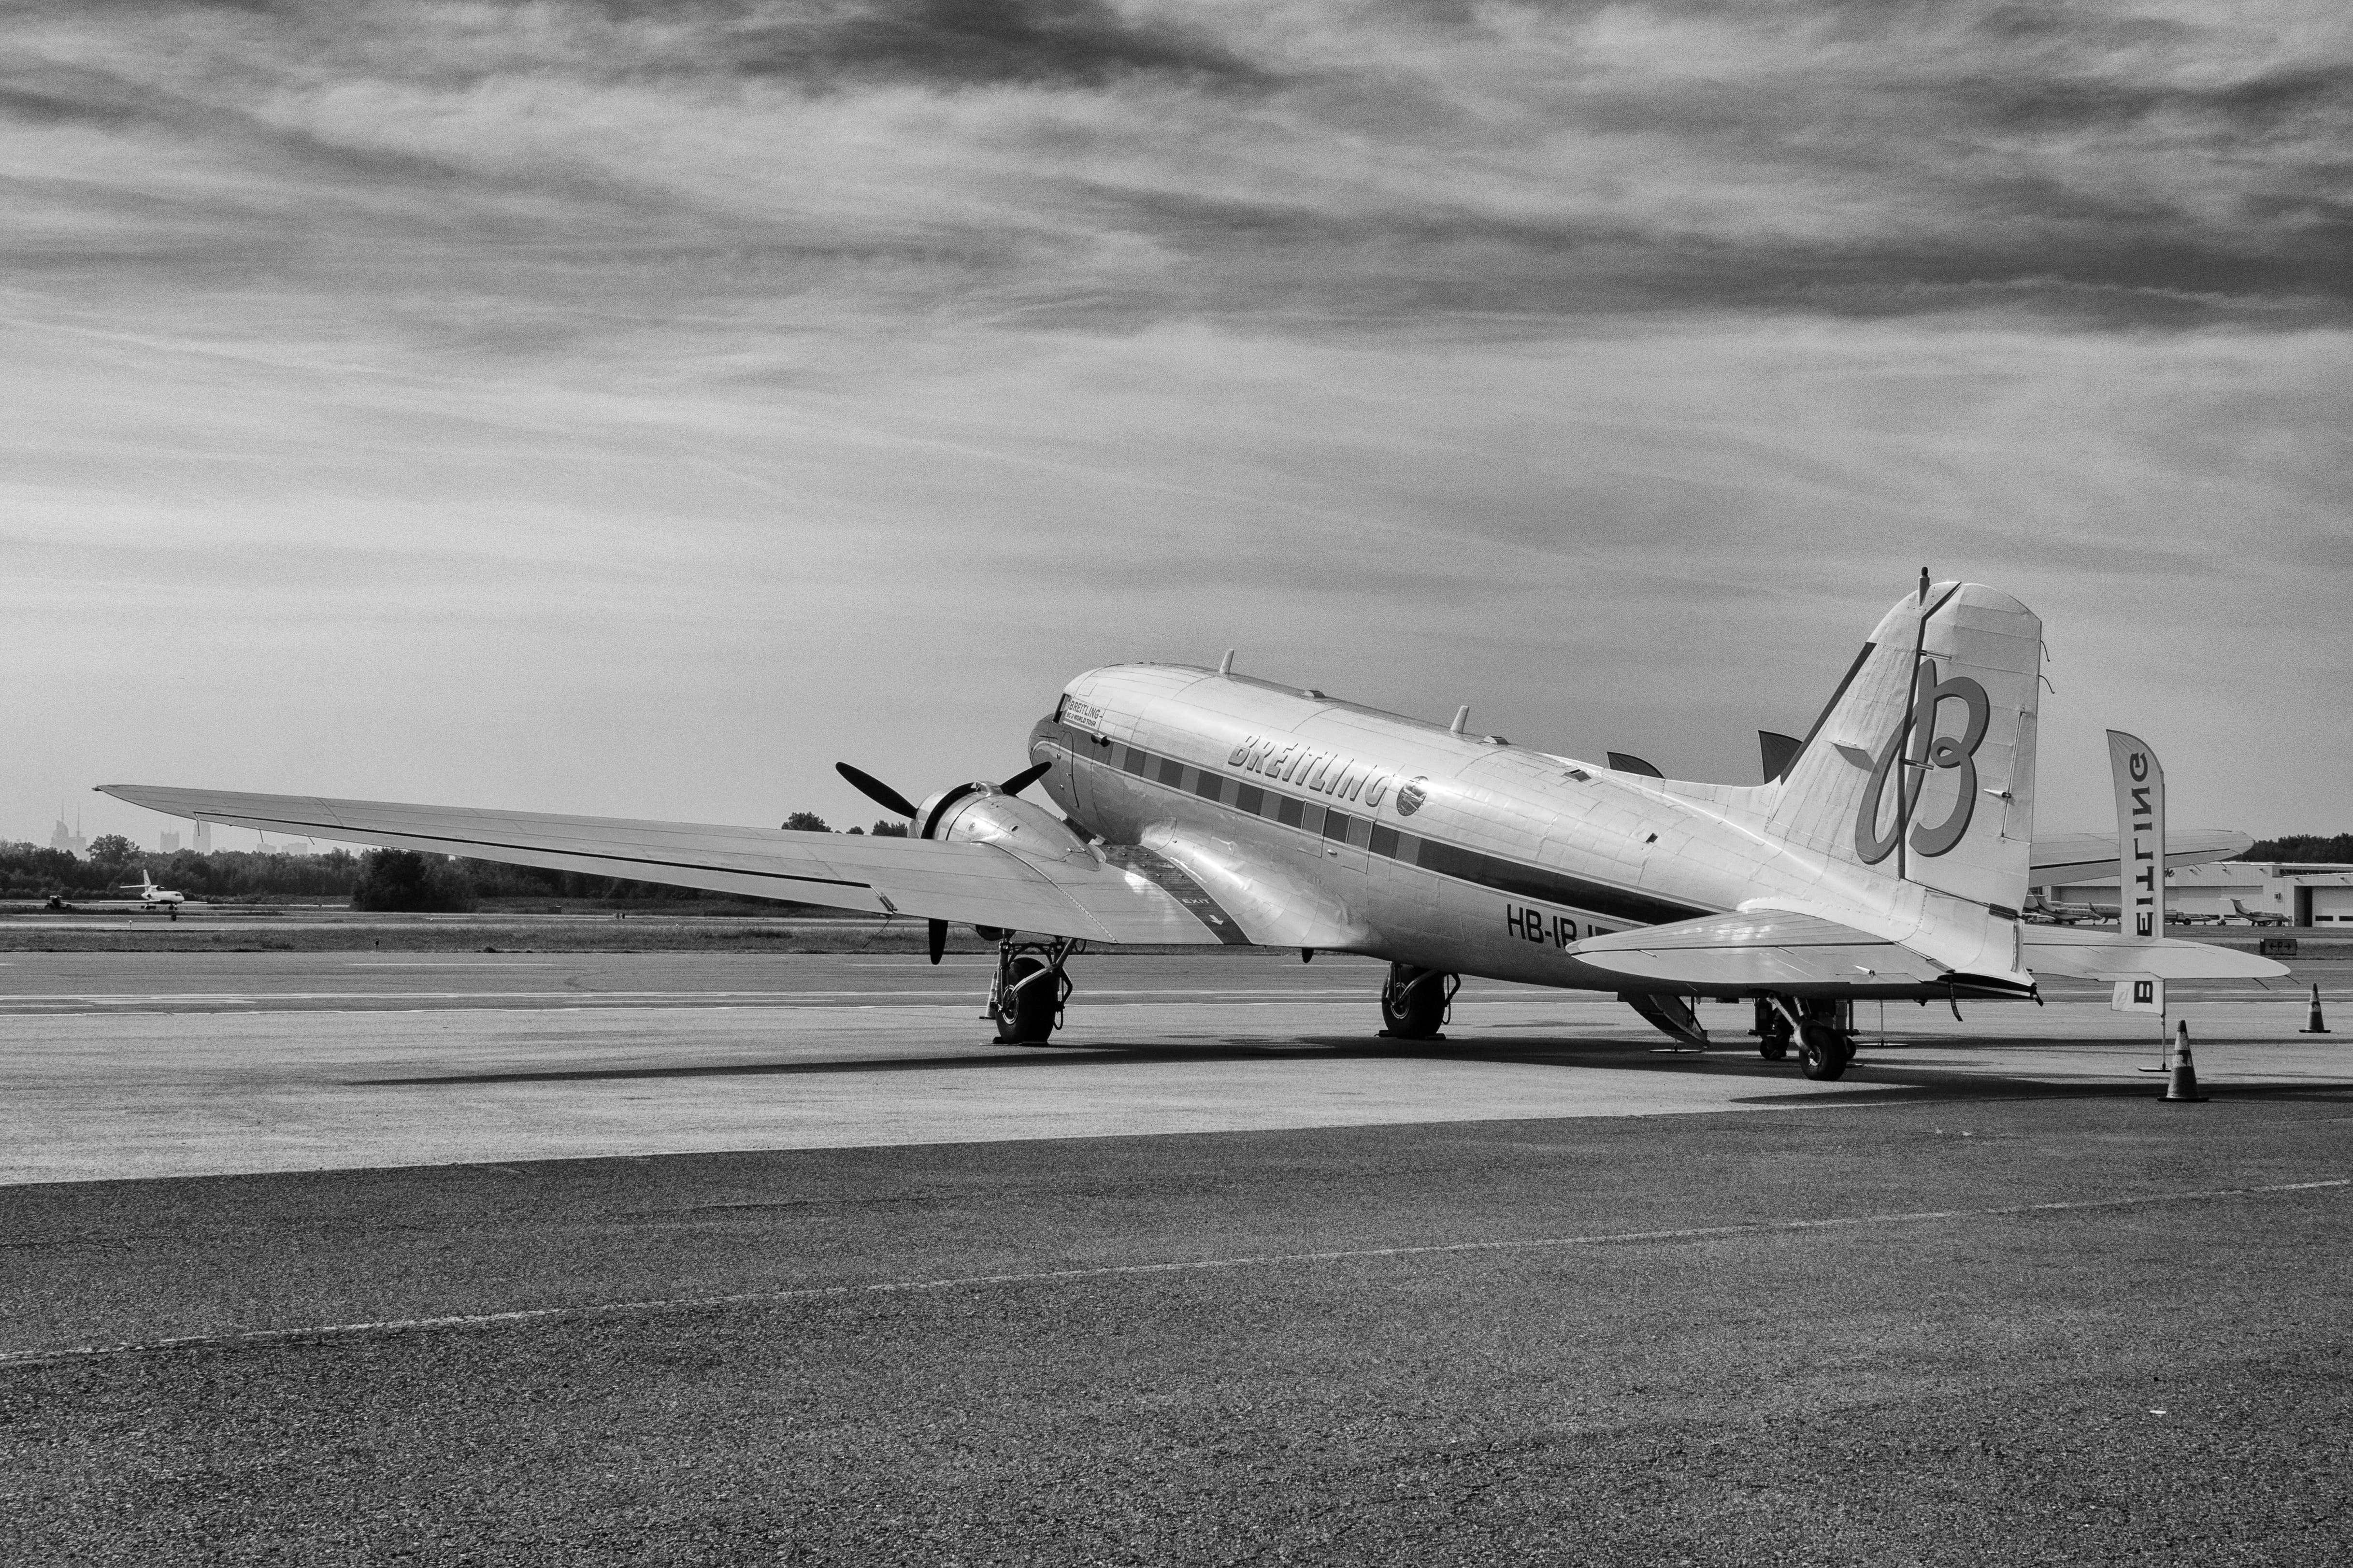 Breitling DC-3 Dispatches: Breitling's DC-3 To Become Oldest Aircraft Ever To Circle The Earth Dispatches: Breitling's DC-3 To Become Oldest Aircraft Ever To Circle The Earth P8212237 bw